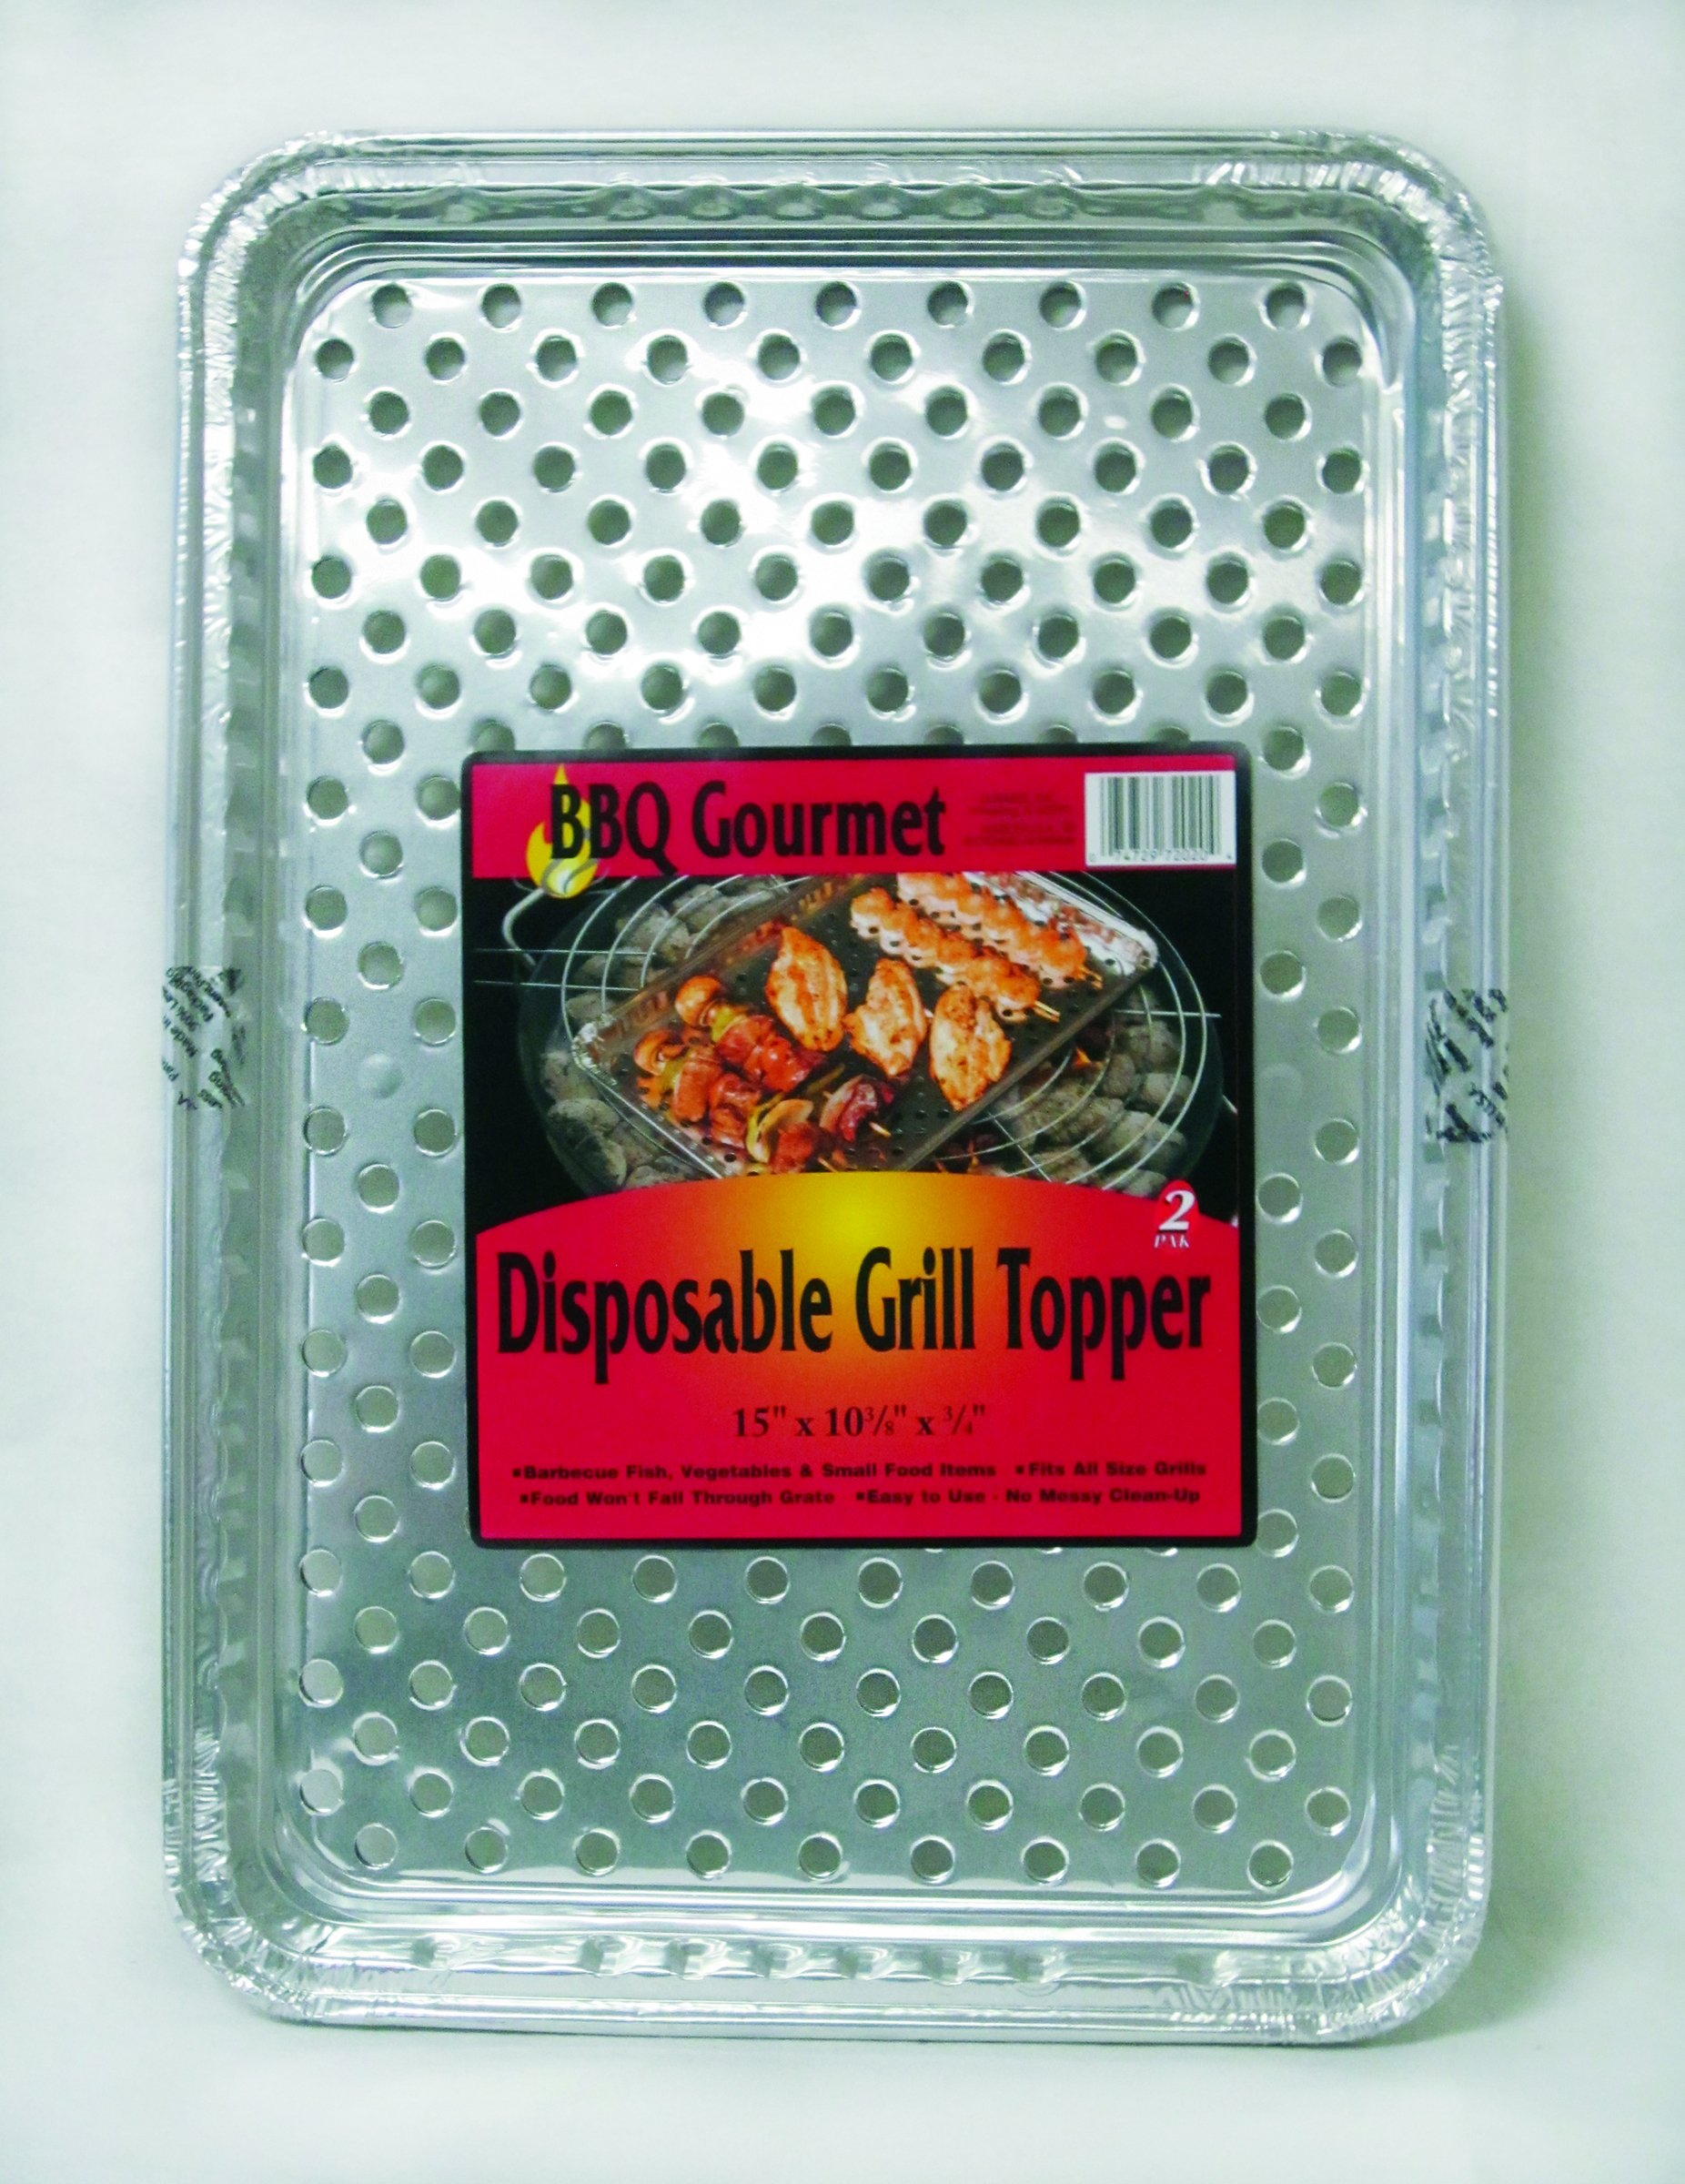 Durable Foil BBQ Gourmet Grill Topper Pan (Pack of 24) by Durable Packaging